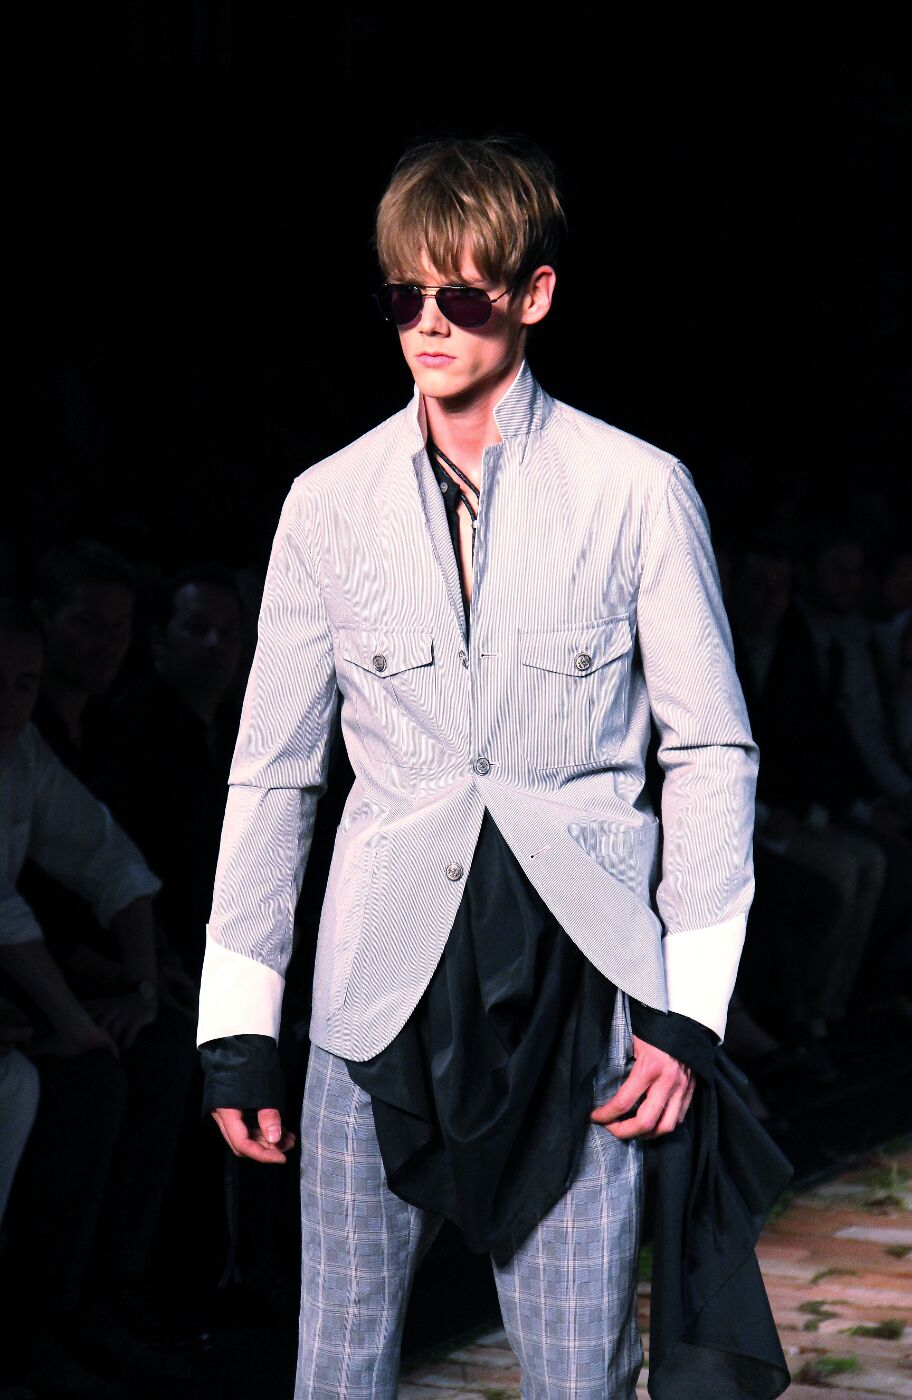 spring-summer-john-varvatos-2012-men-collection-milano-fashion-week-2012-john-varvatos-fashion-show-catwalk